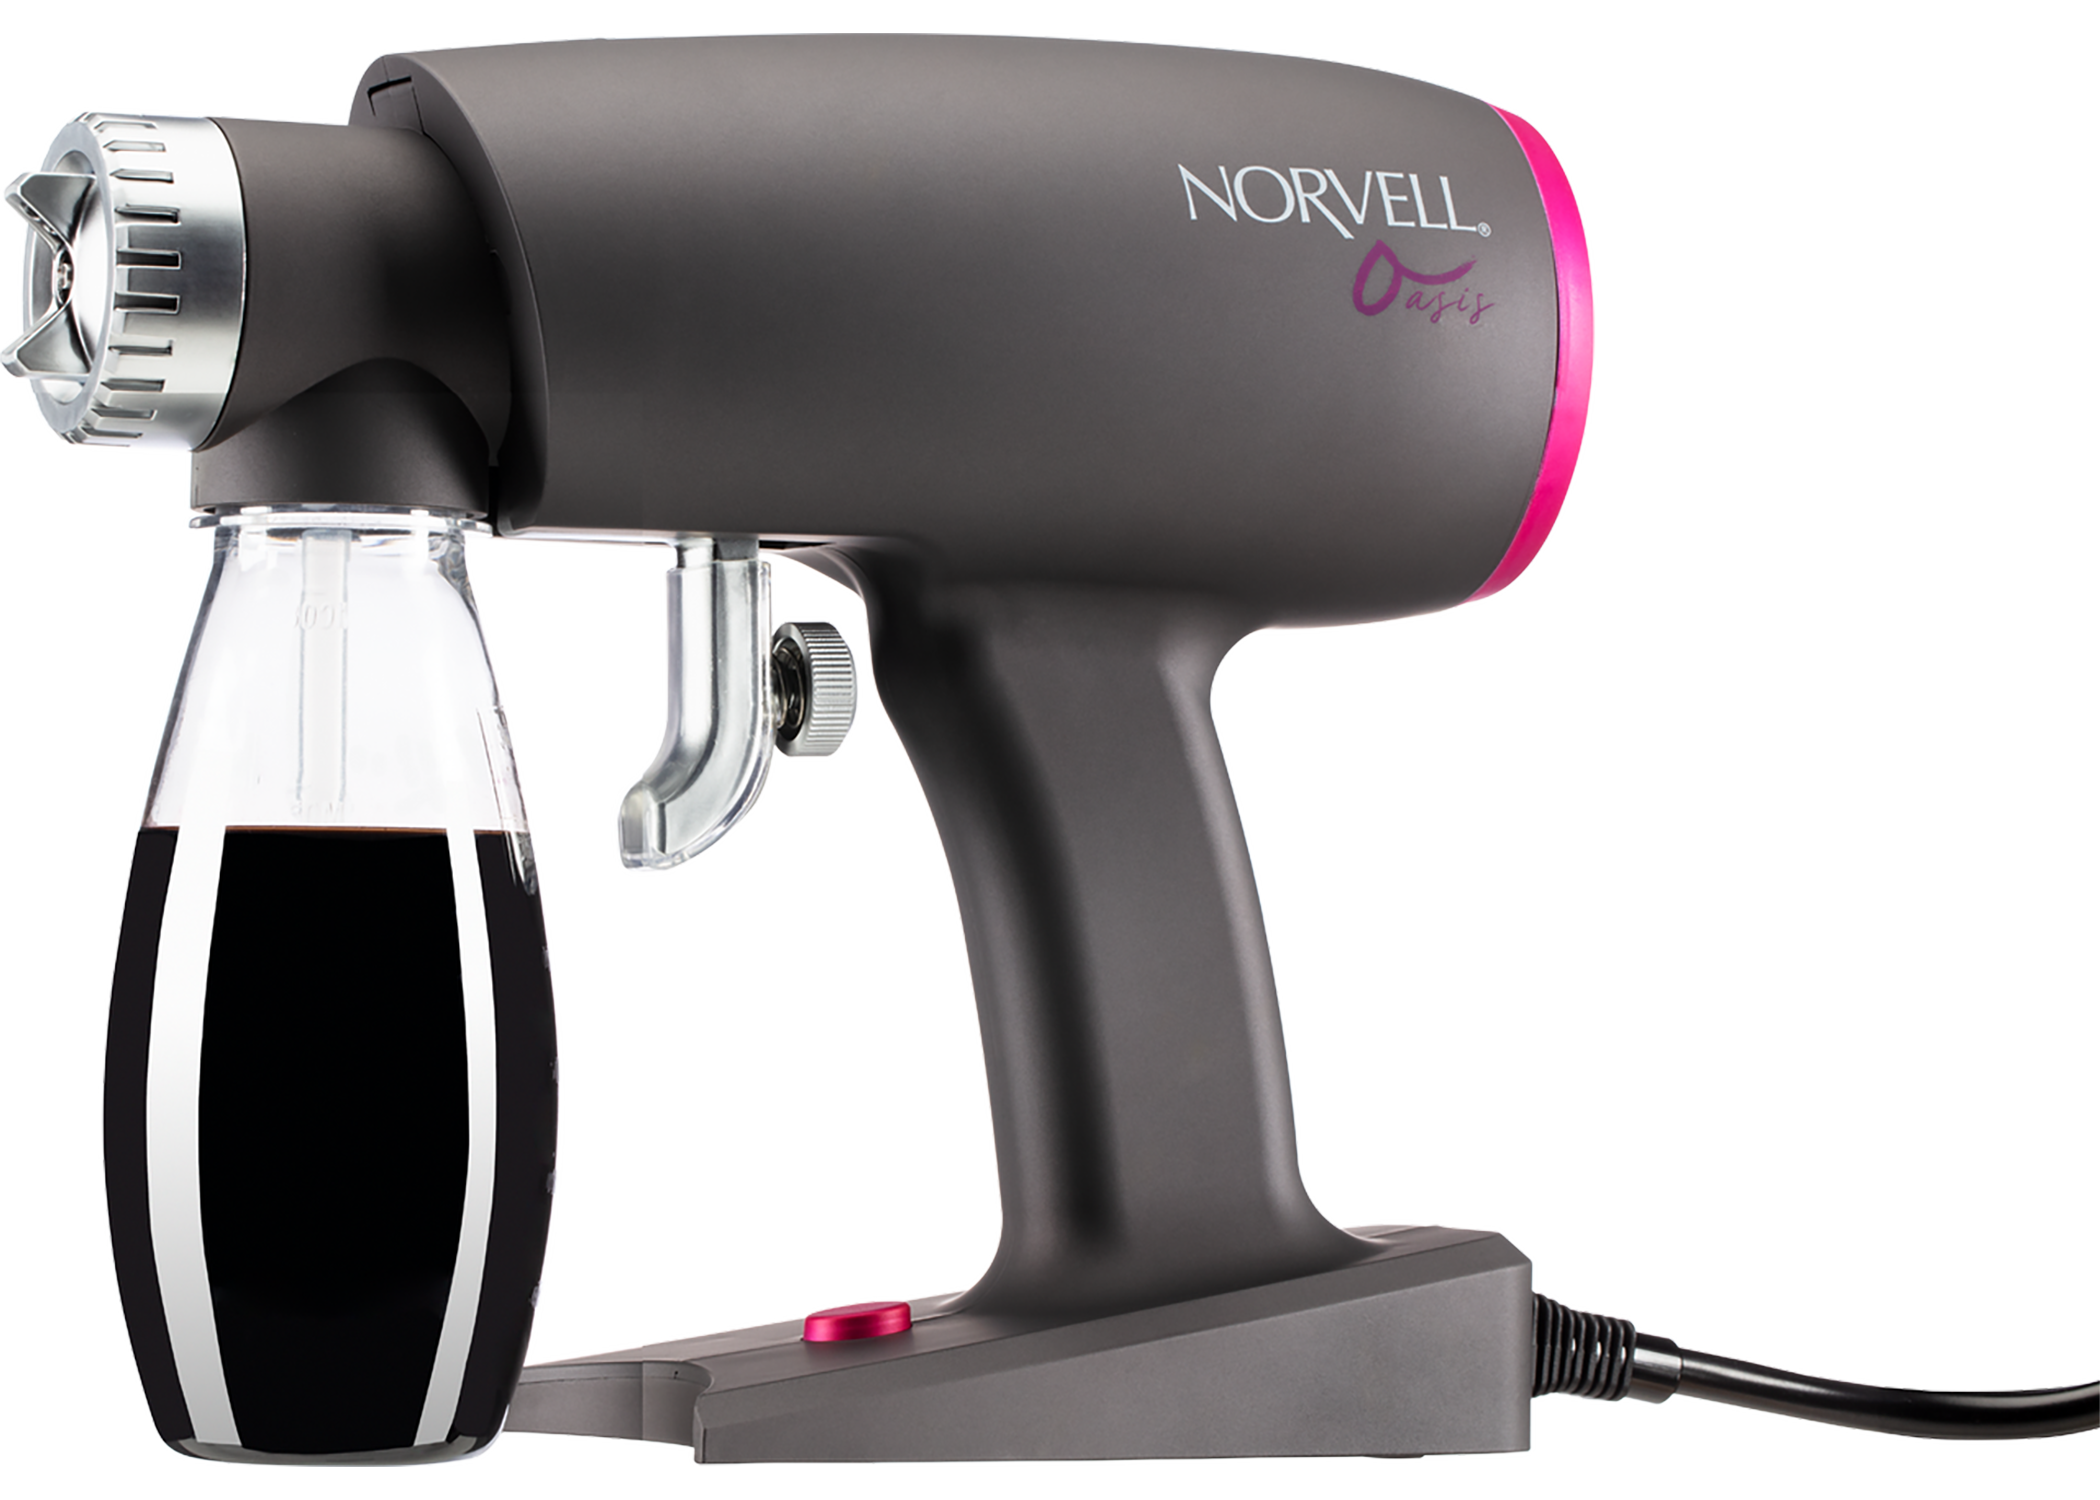 Norvell Oasis Spray Tan Gun